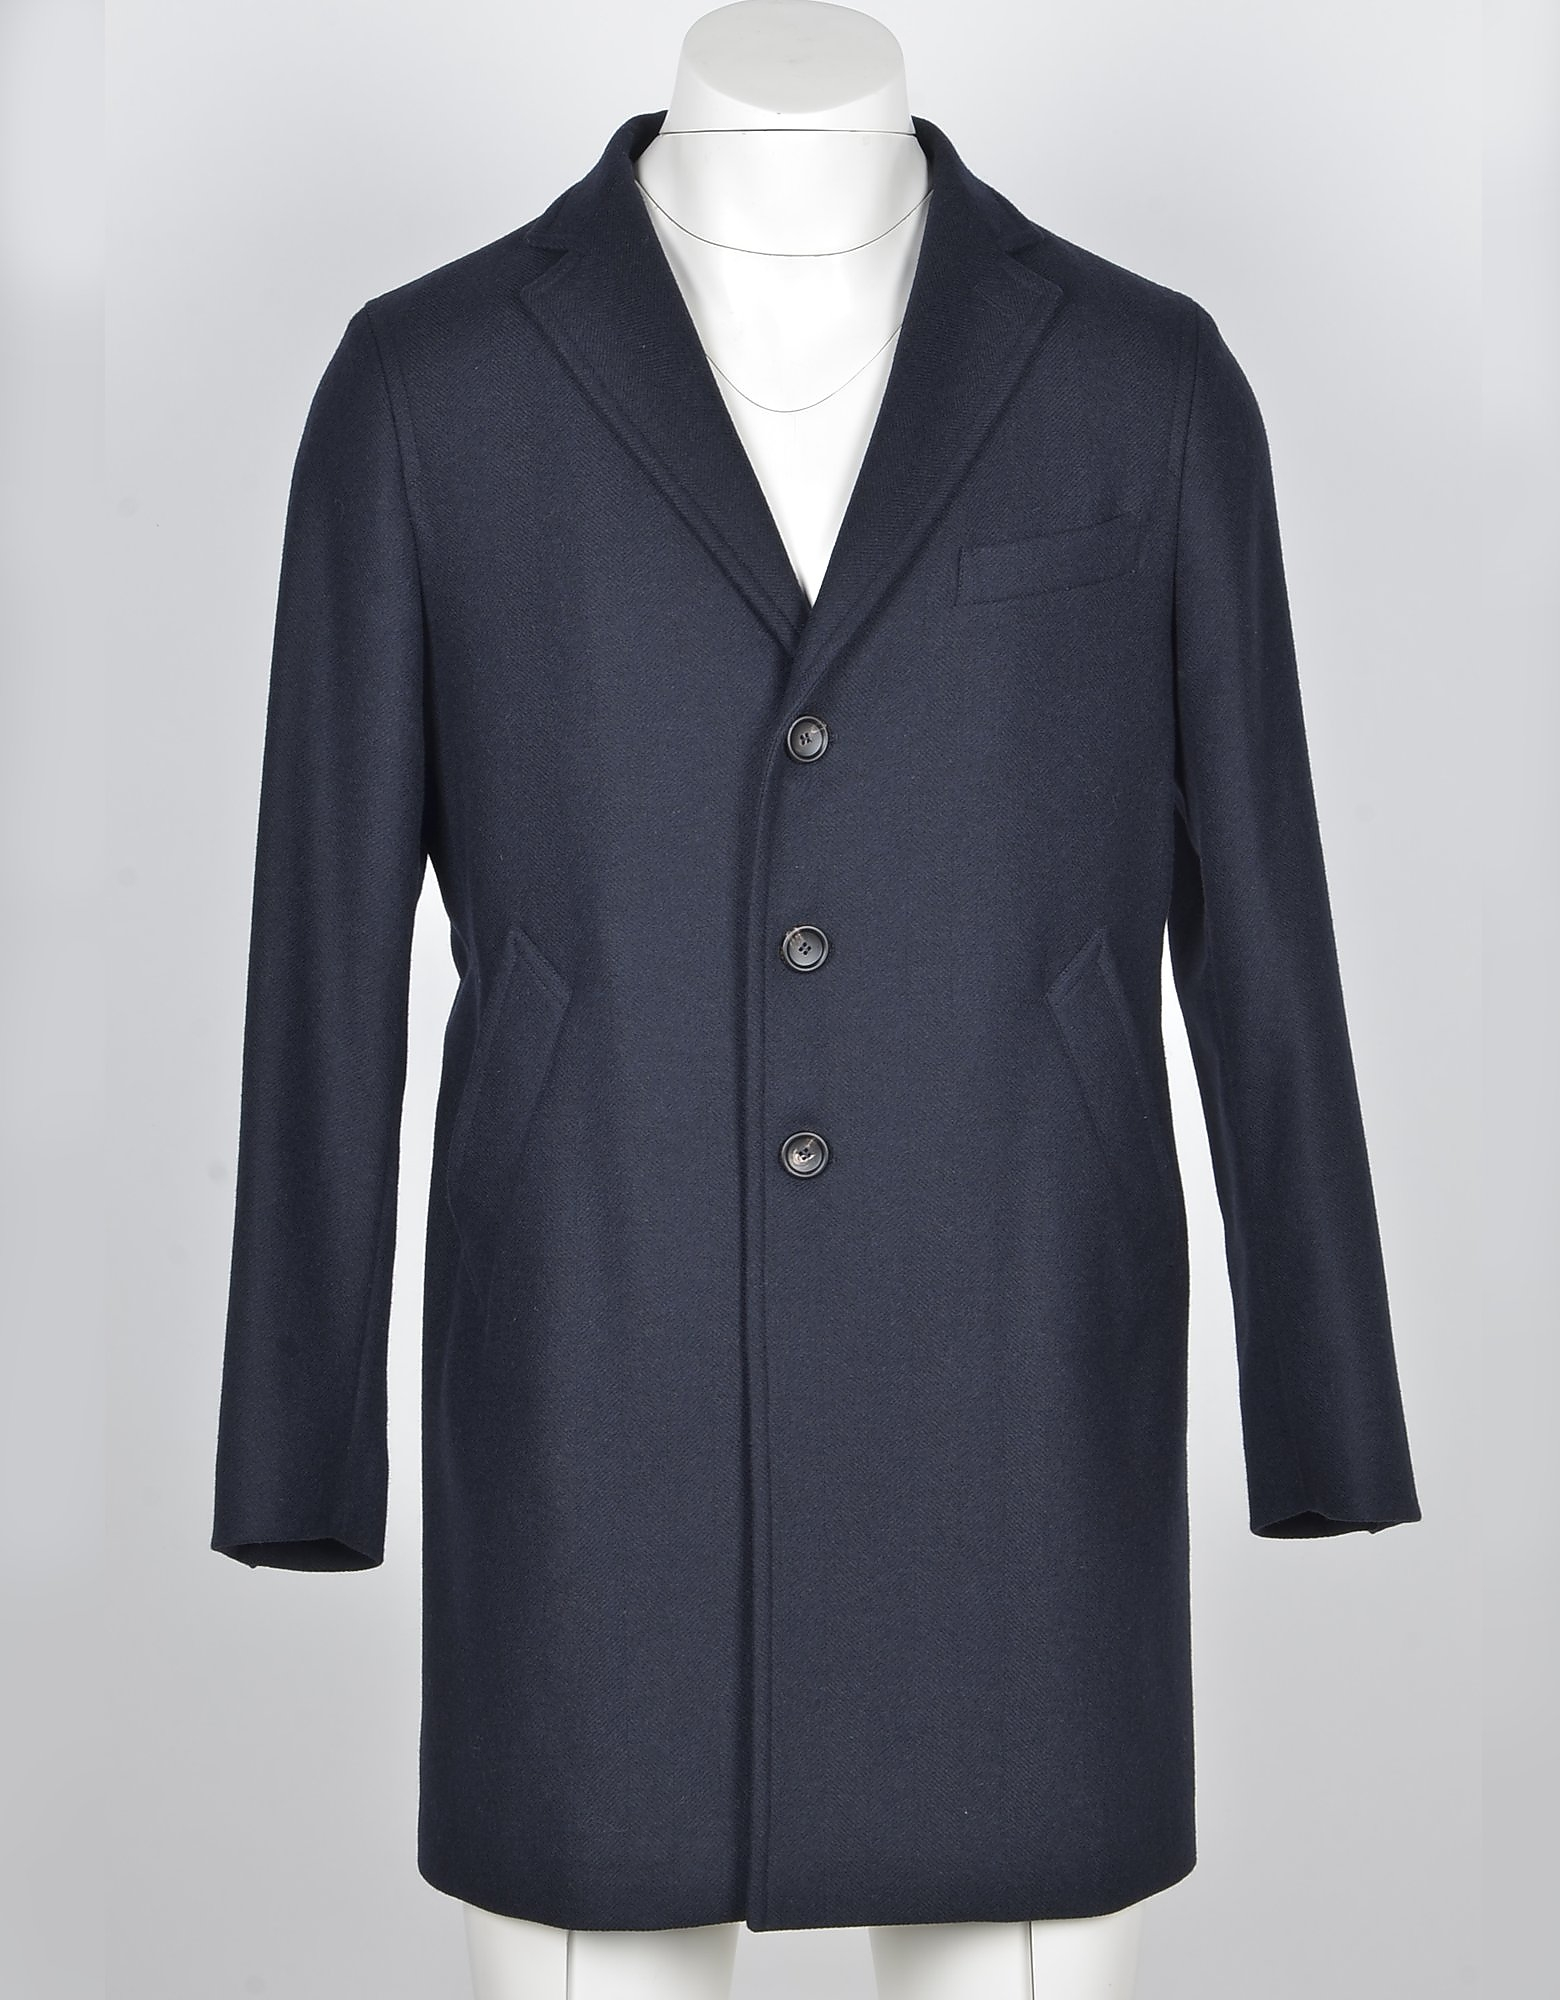 Fradi Designer Coats & Jackets, Men's Blue / Black Coat